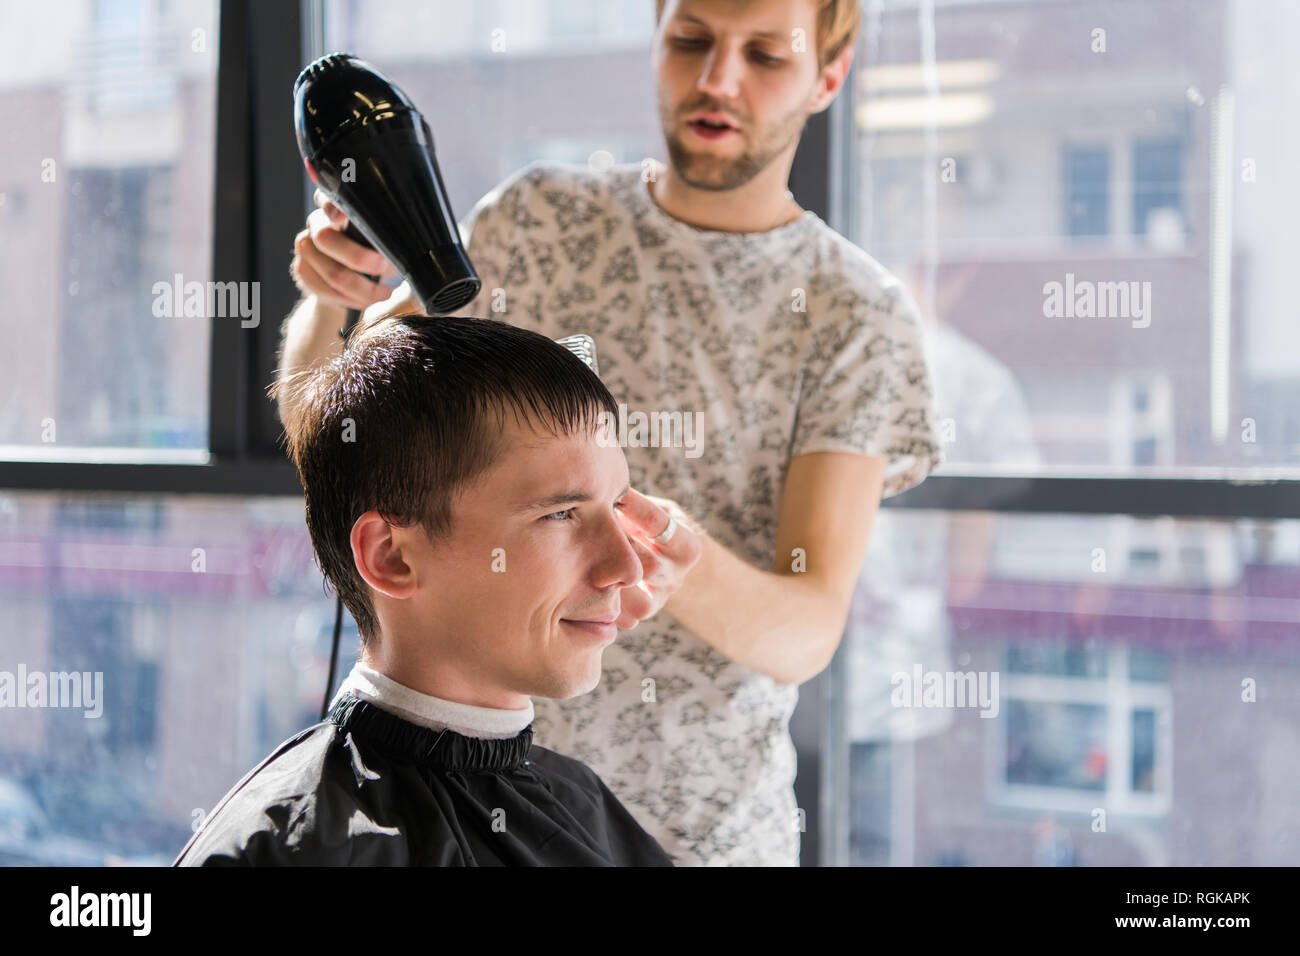 Drying, styling men's hair in a beauty salon - Stock Image